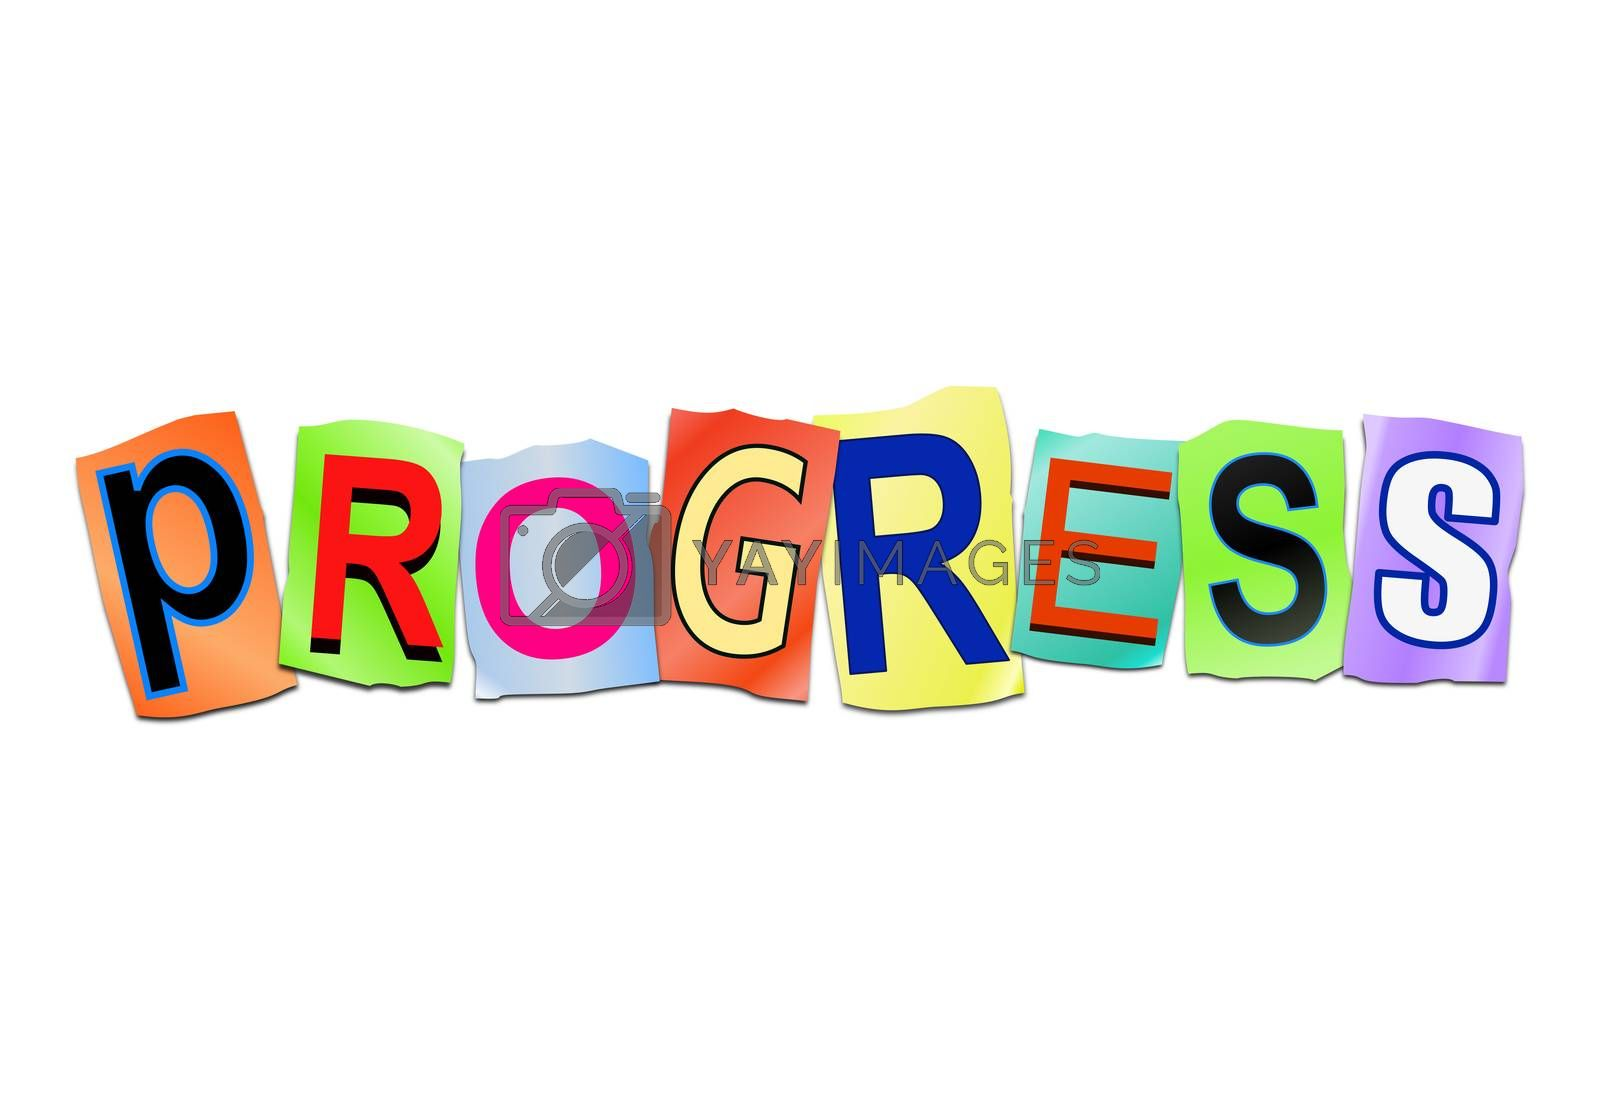 Illustration depicting a set of cut out printed letters arranged to form the word progress.